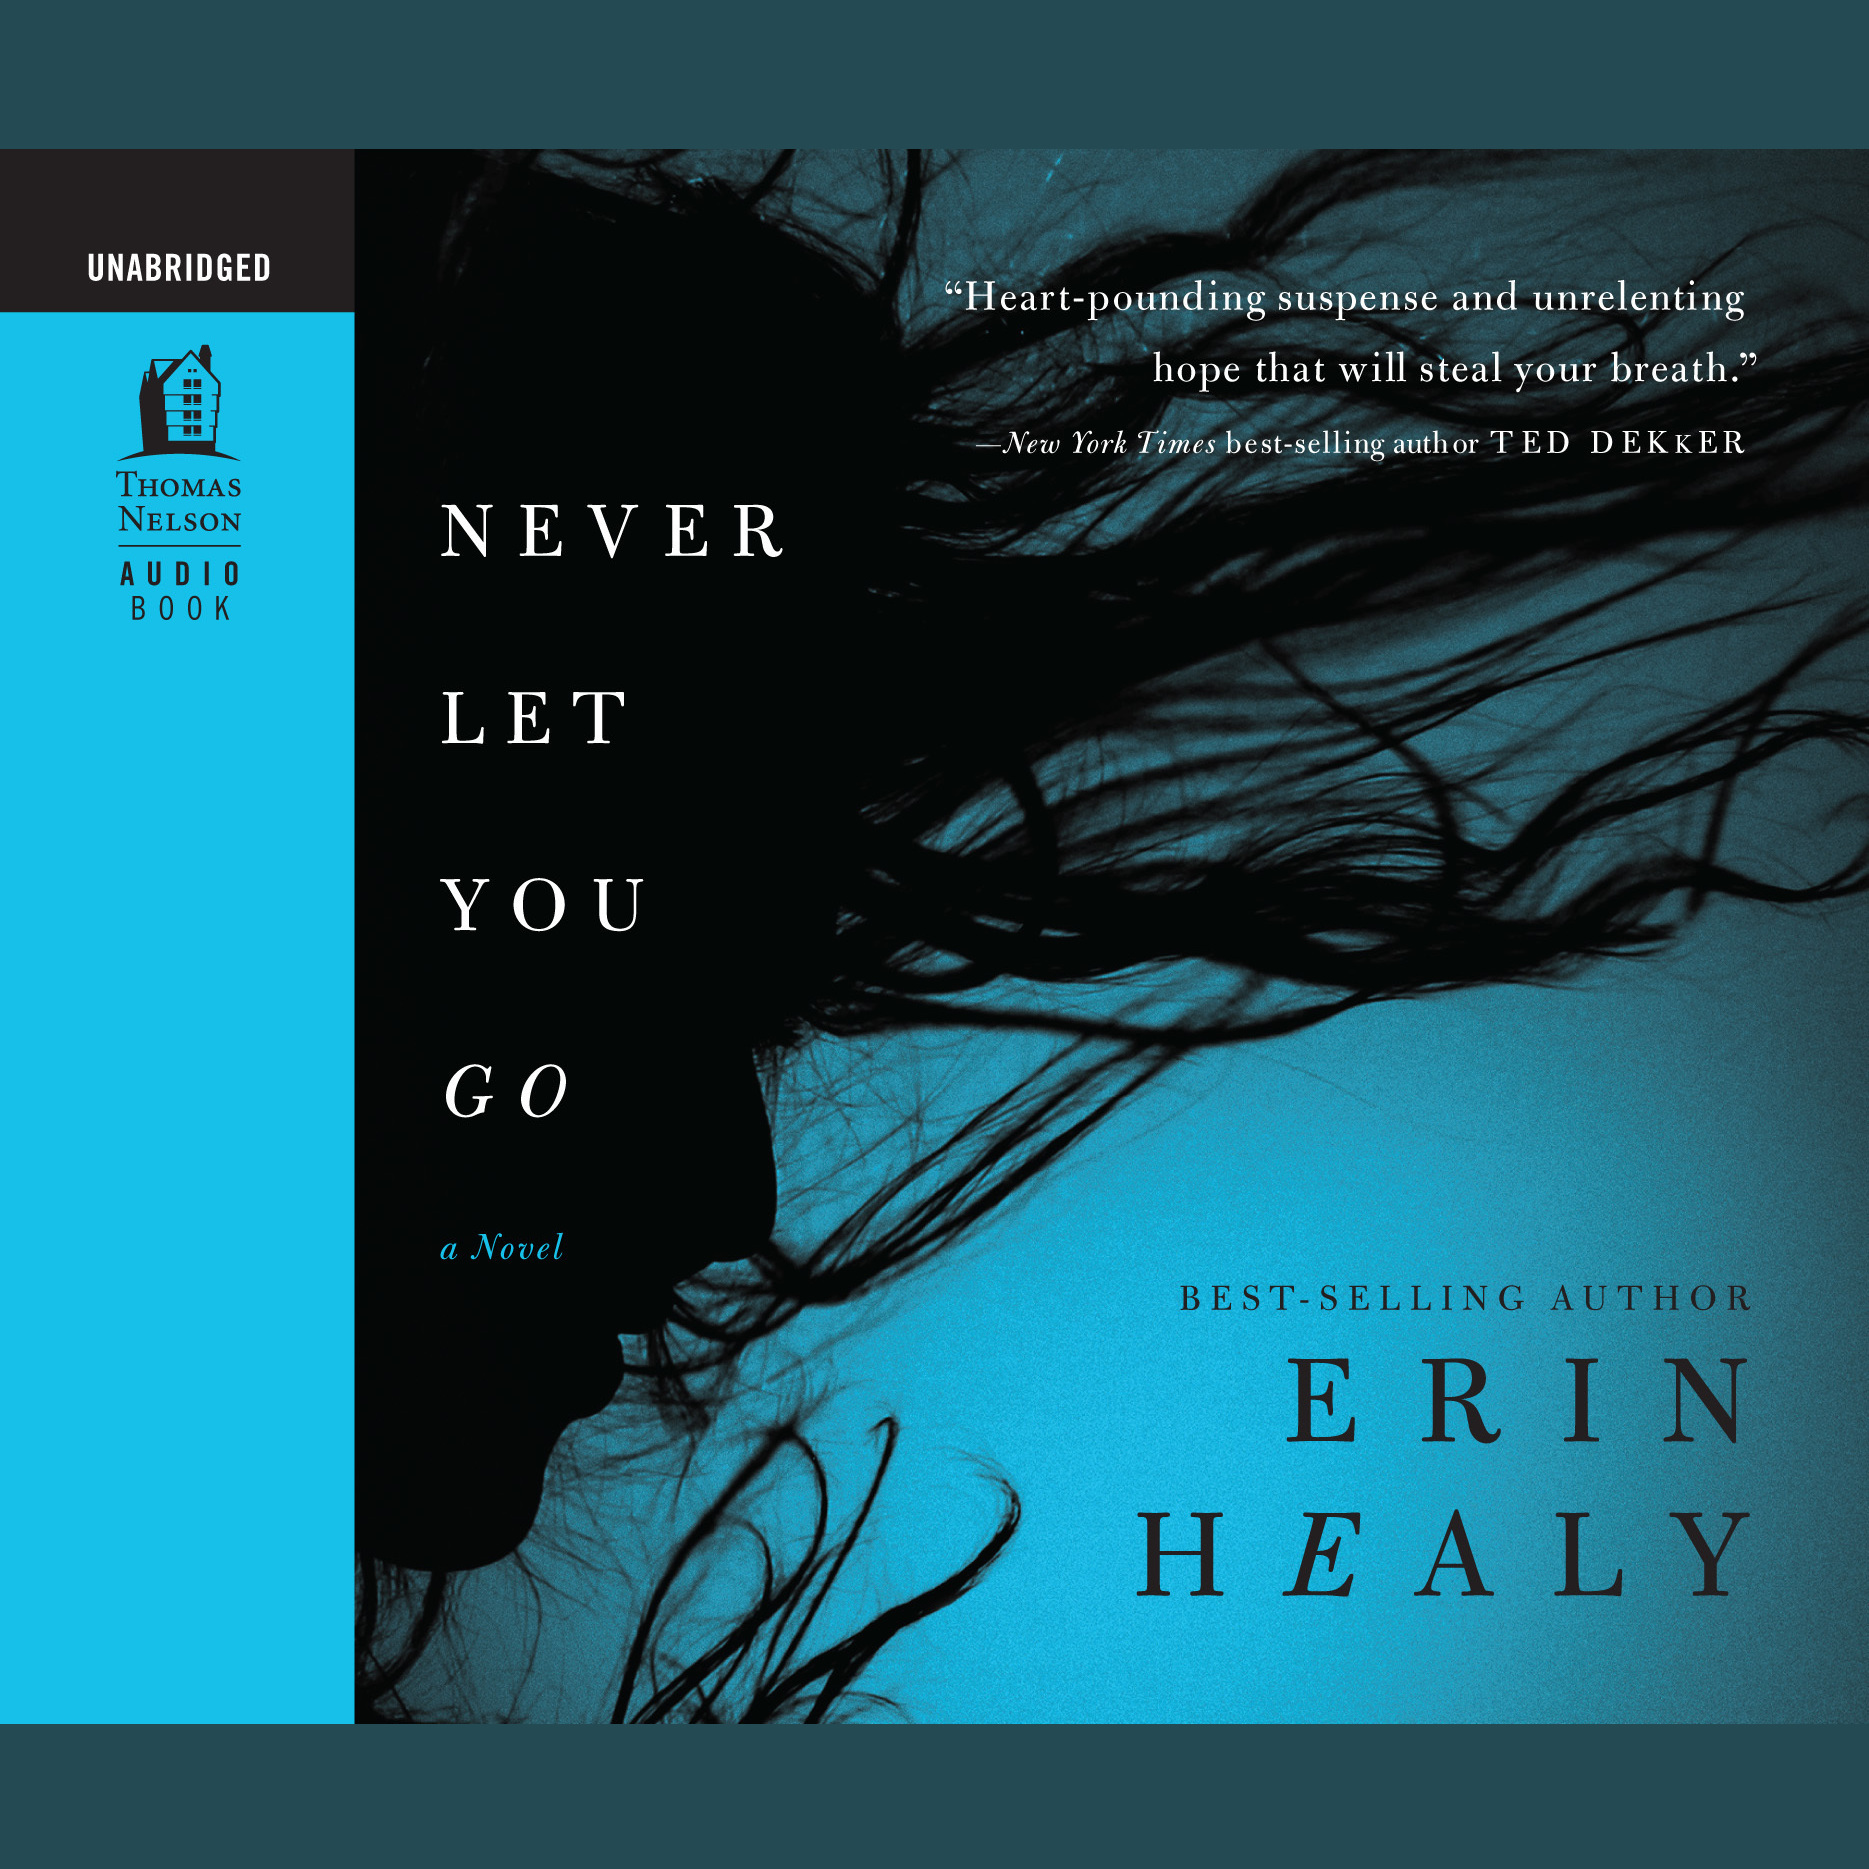 Printable Never Let You Go: Audio Book Audiobook Cover Art